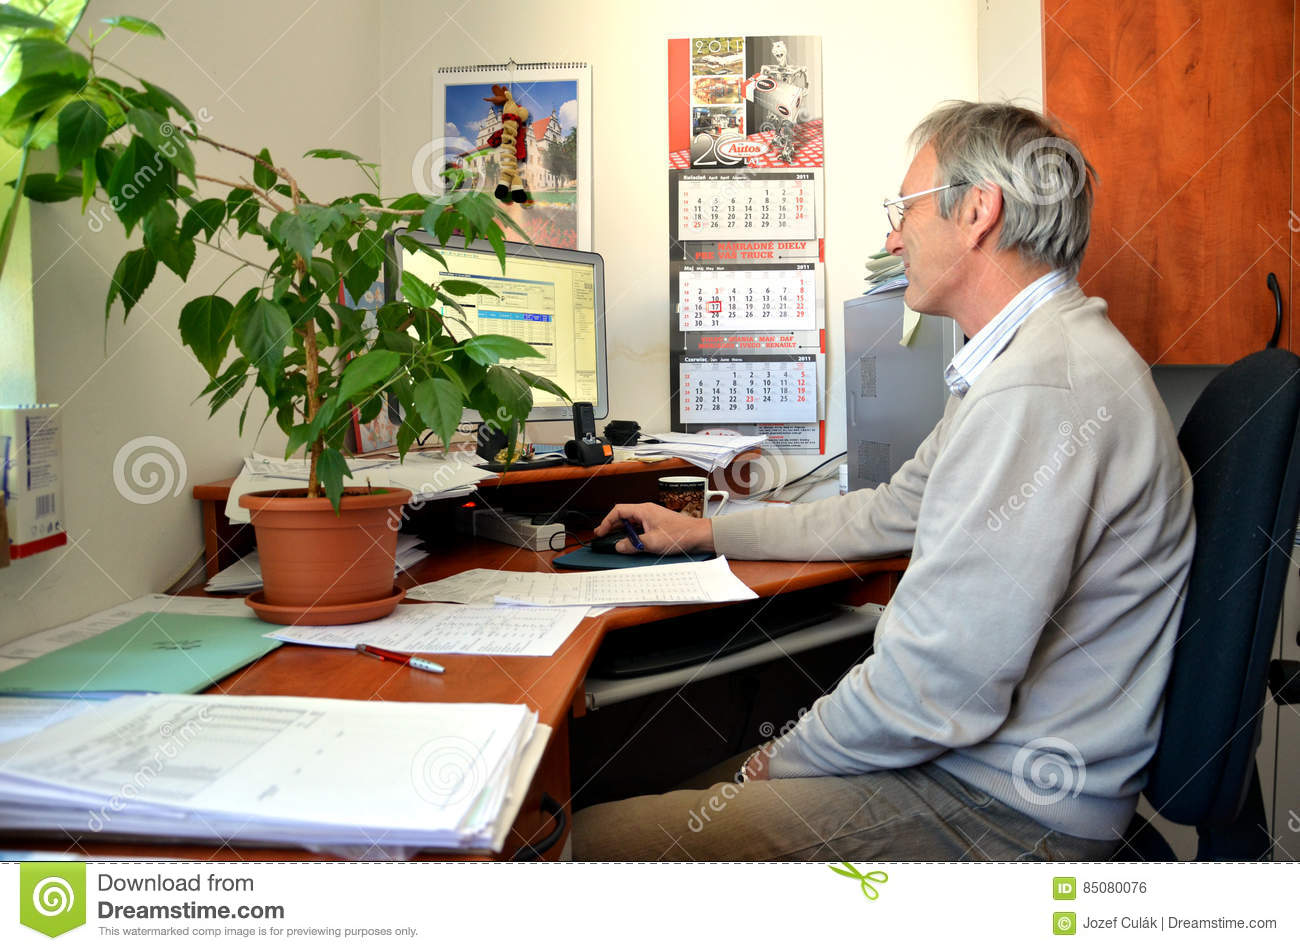 Old Man With Smile, An Accountant, Sit In Office And Works With Computer.